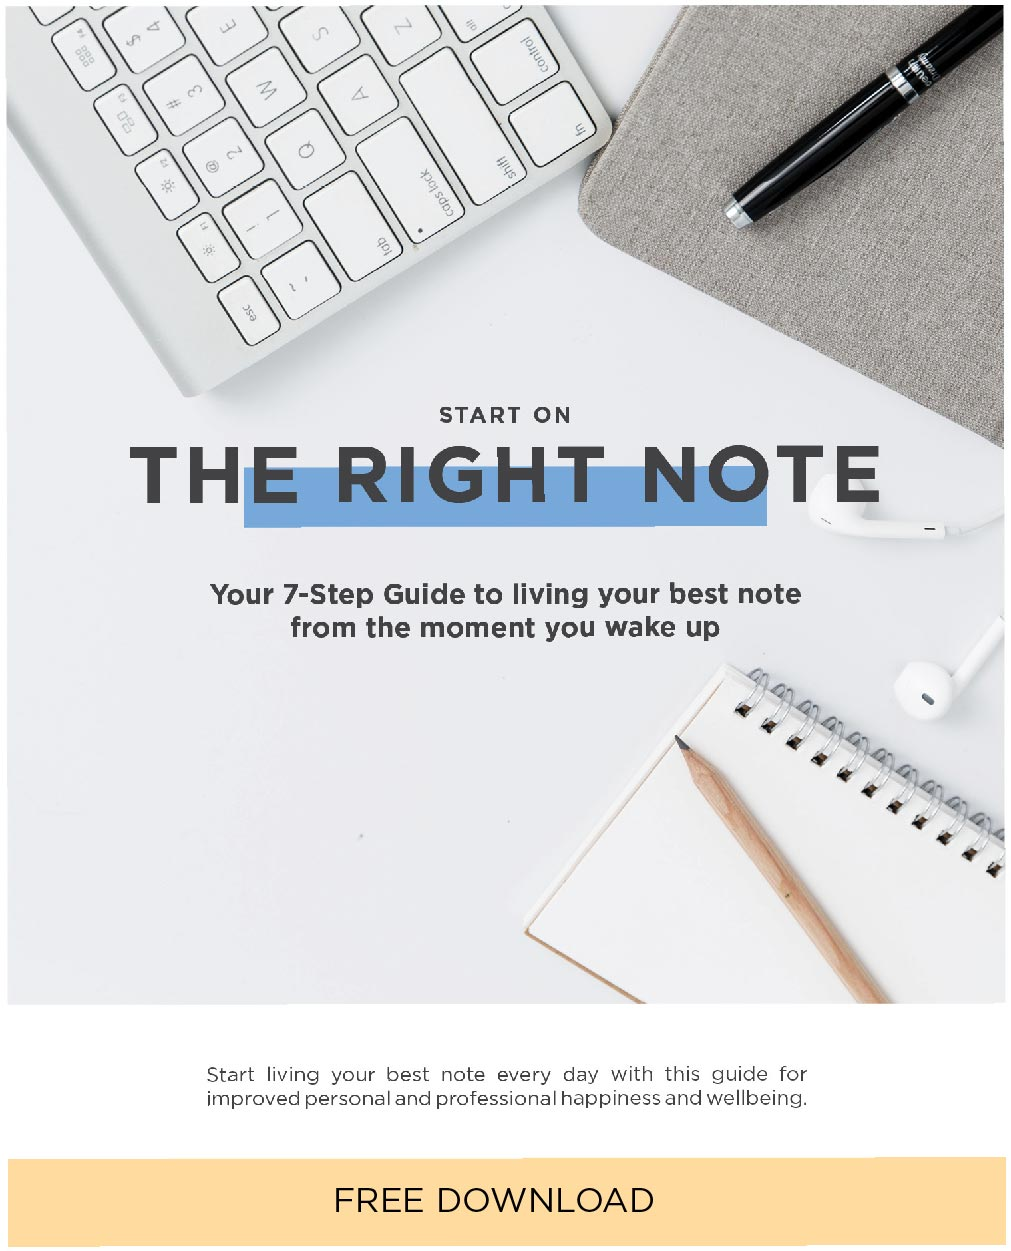 Download the 7-Step Guide to Start Your Day on the Right Note.